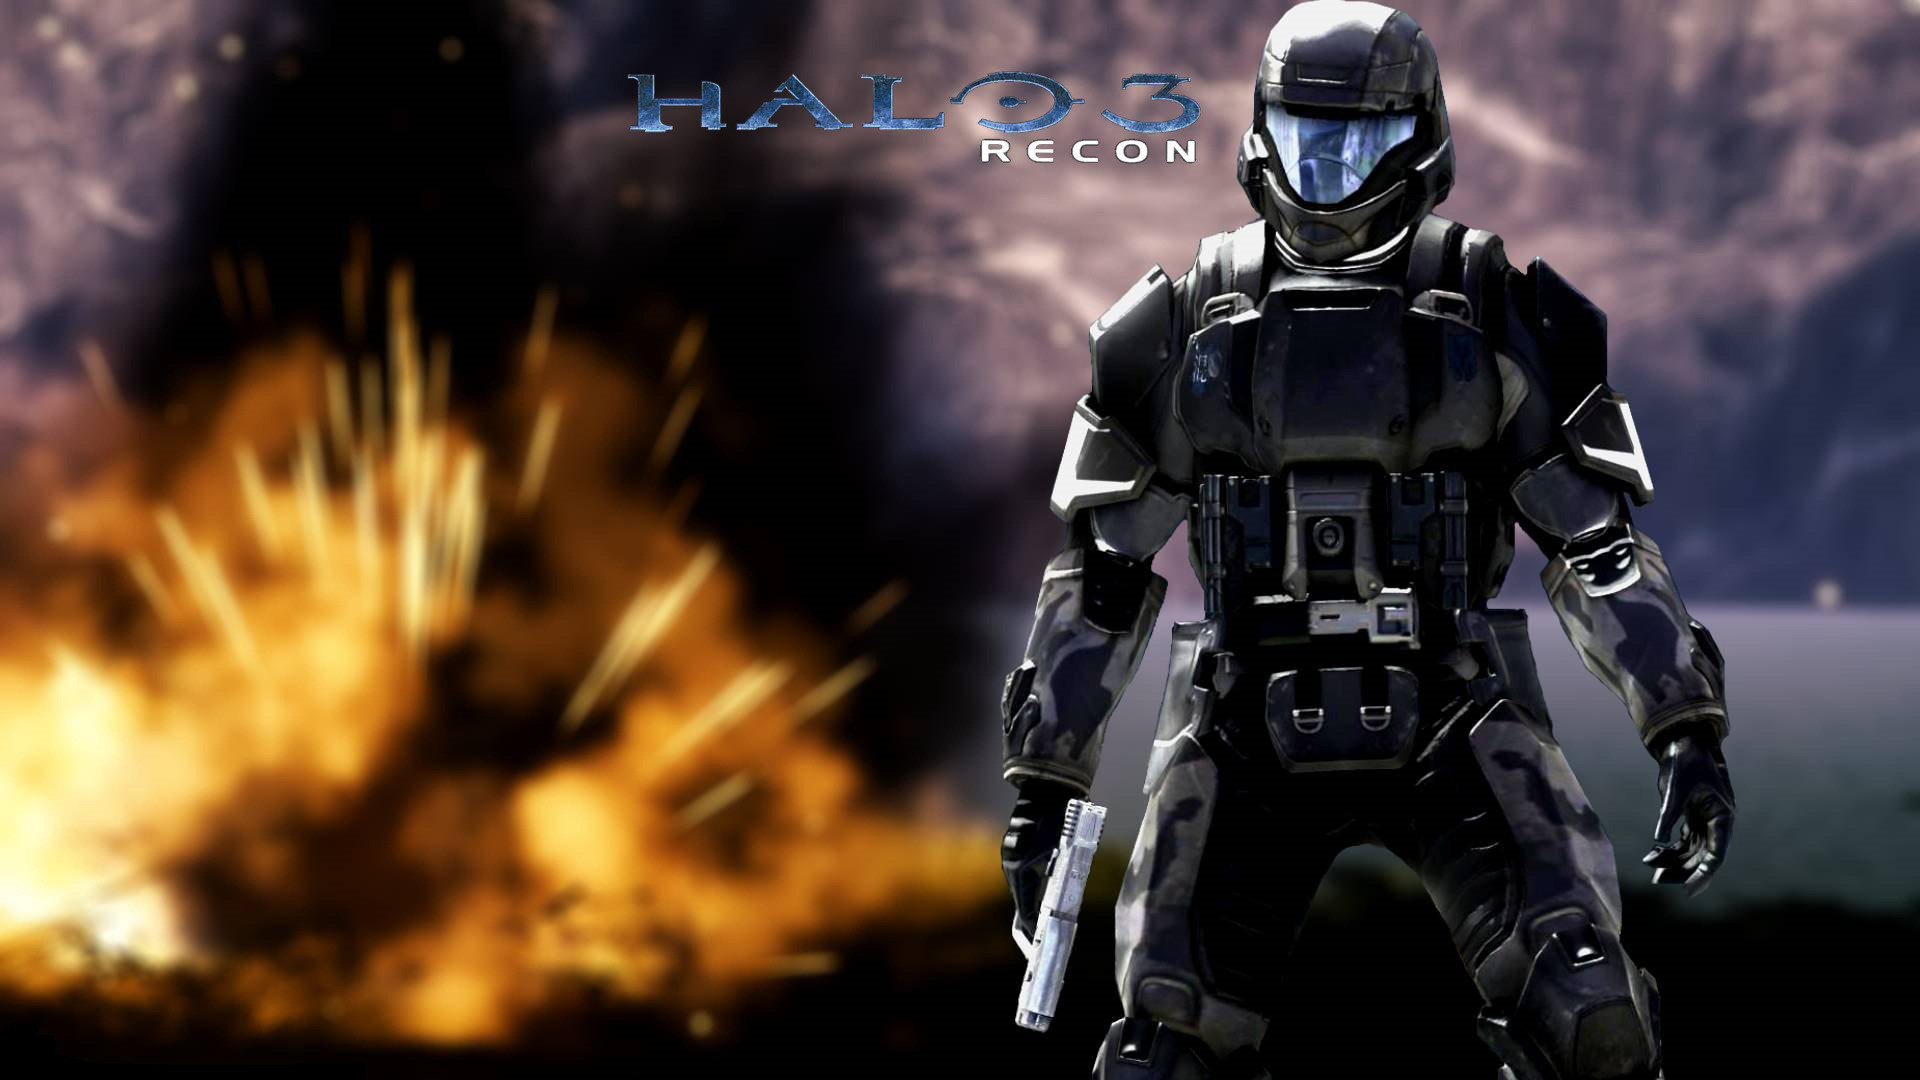 Halo 3 Wallpapers Hd 75 Background Pictures